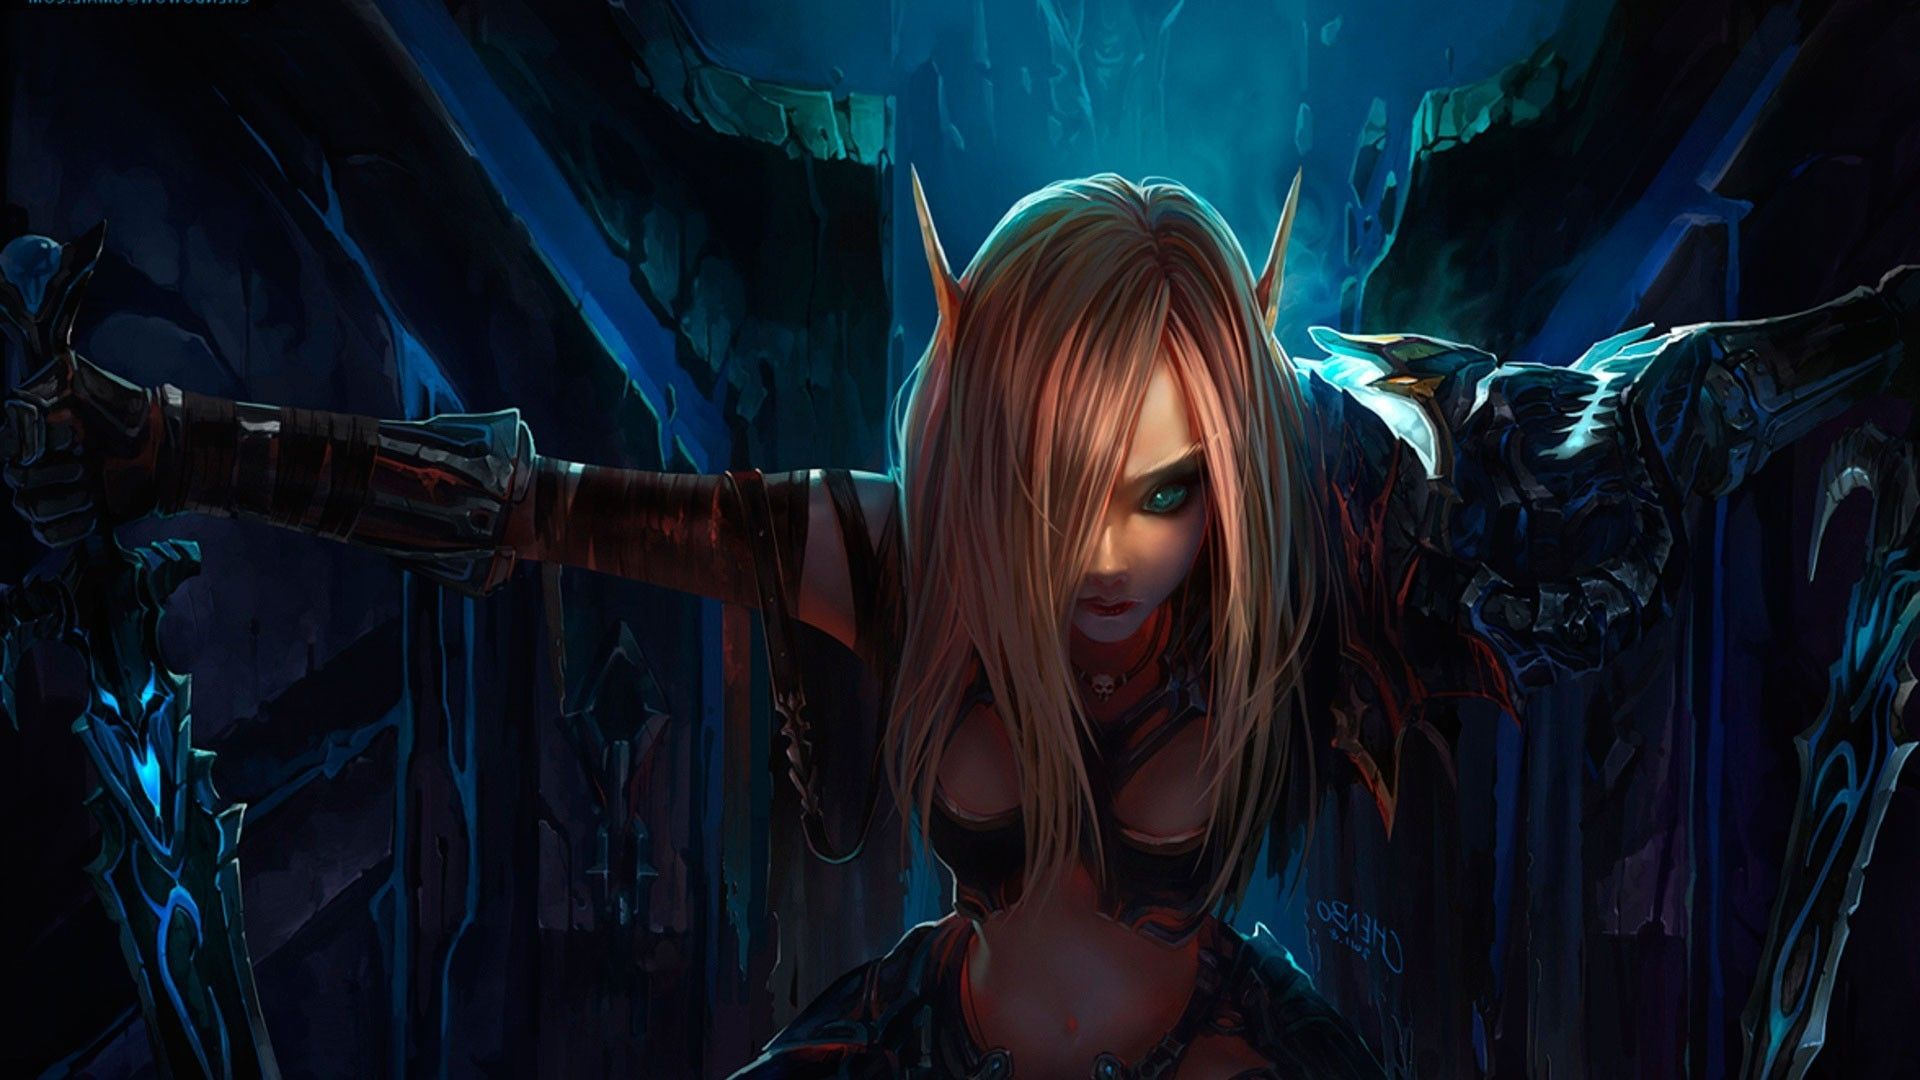 Page full hd p world of warcraft wallpapers hd desktop hd page full hd p world of warcraft wallpapers hd desktop voltagebd Choice Image